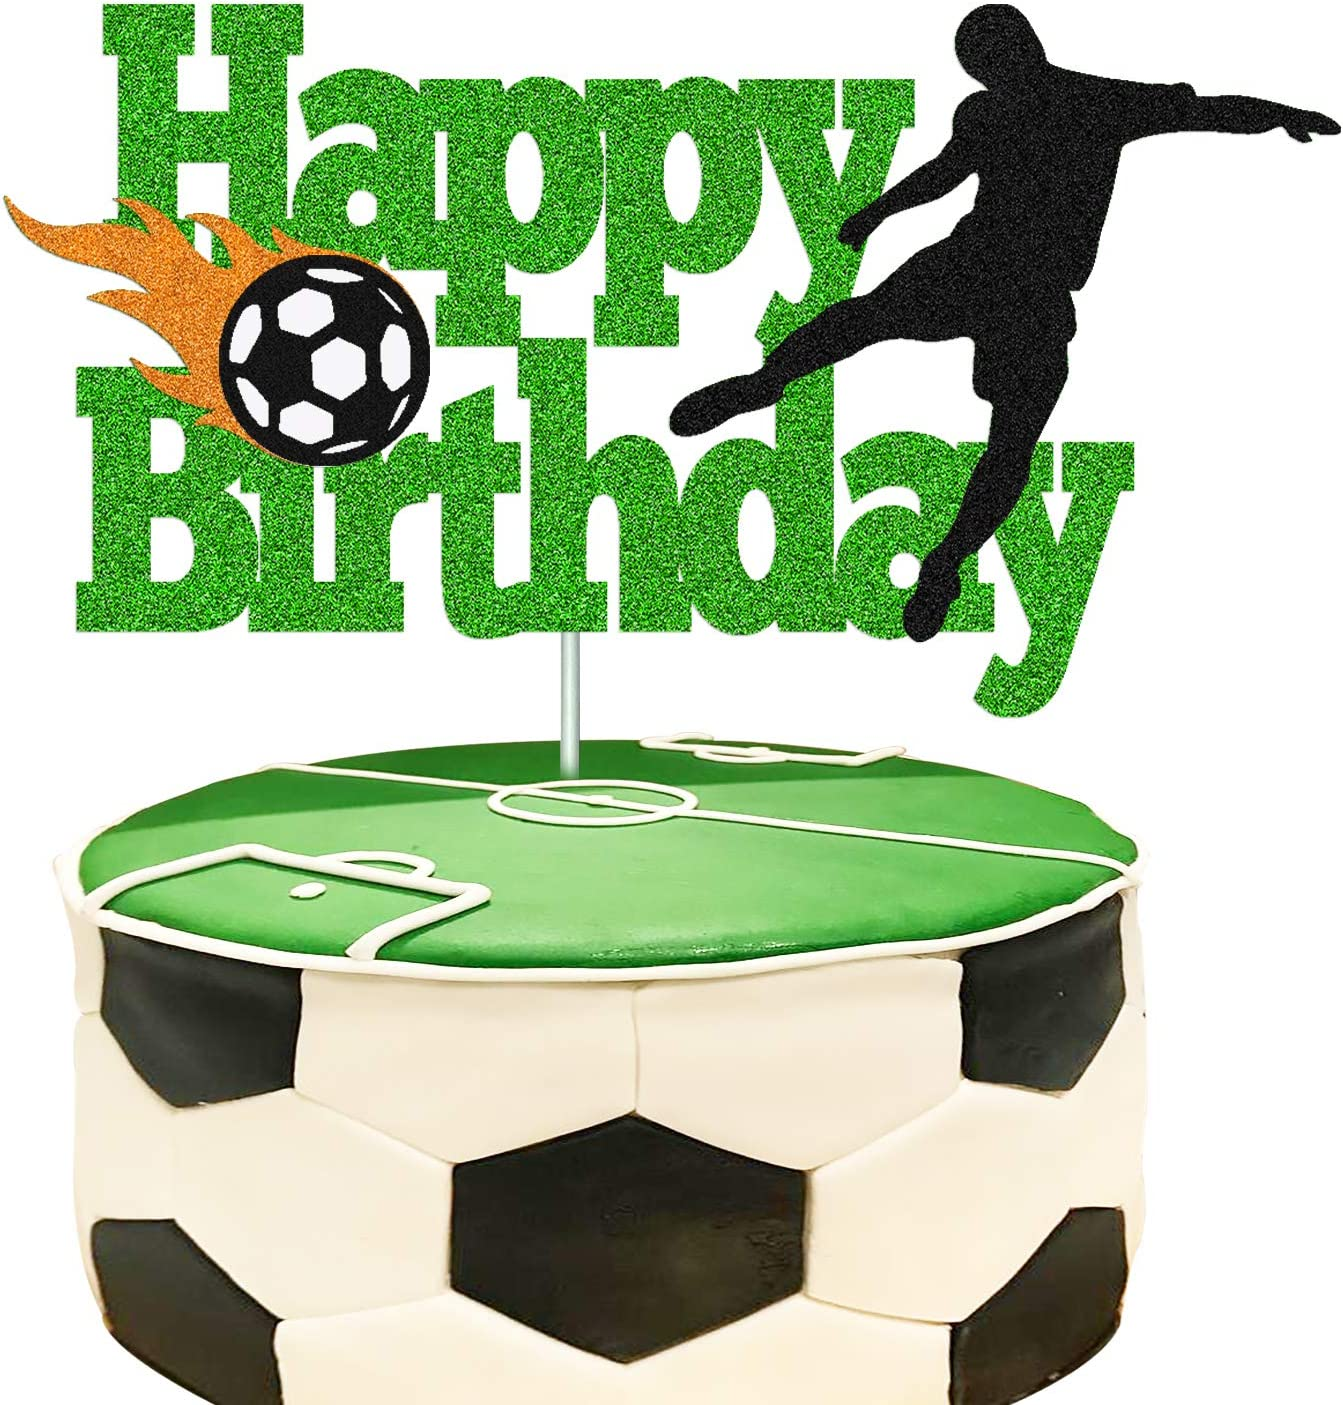 Soccer Cake Topper Happy Birthday Sign Football Player Cake Decorations for Sport Theme Man Boy Girl Birthday Party Supplies Double Sided Green Sparkle Decor